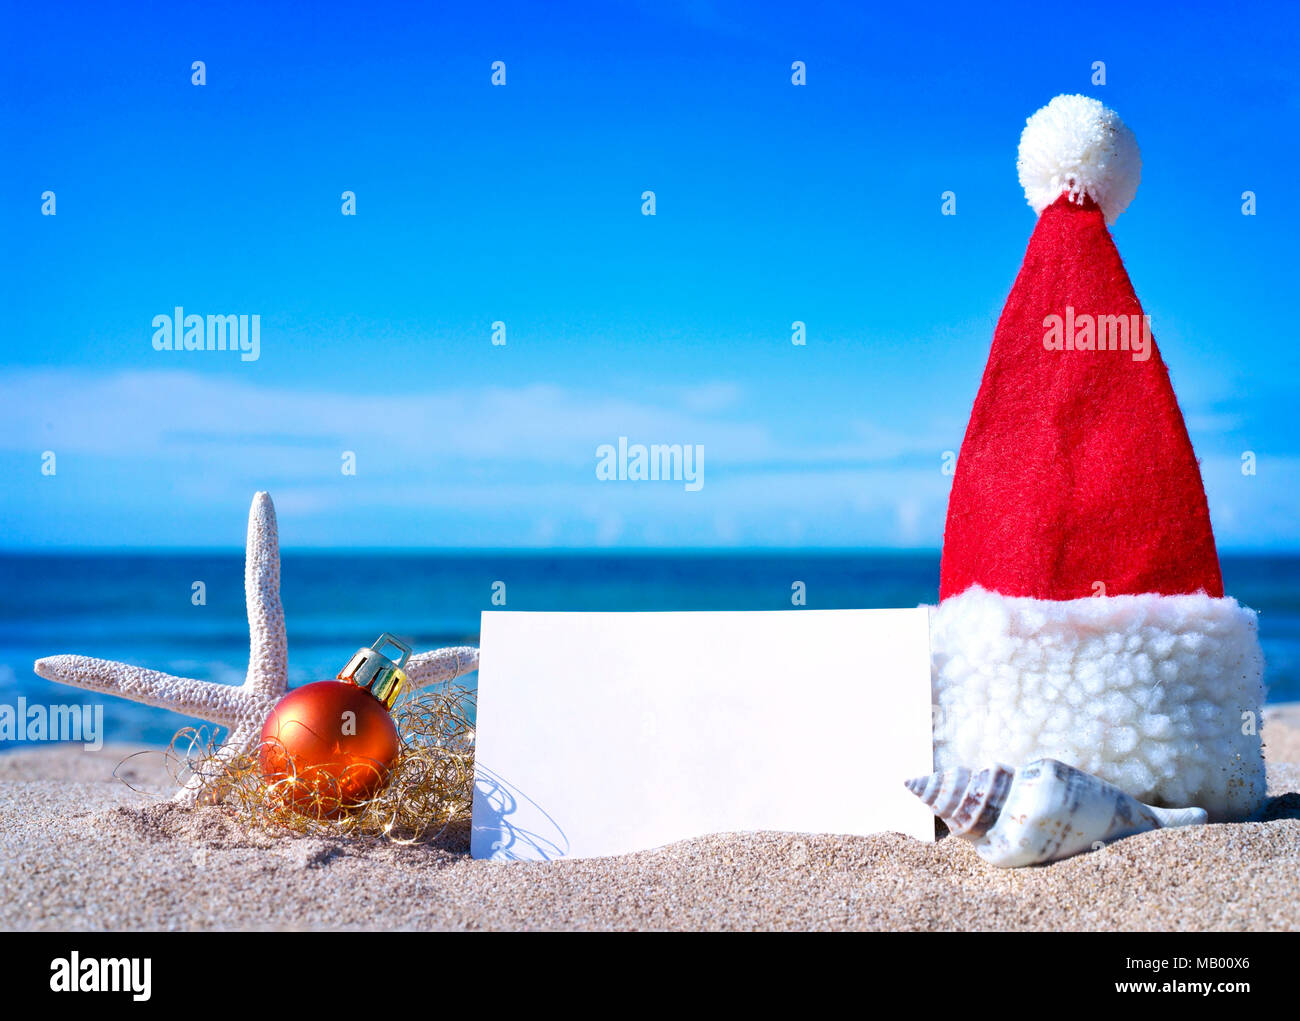 Christmas greeting card and christmas decoration on the beach. Beach scene with starfish, shells and sand. Christmas tree ball and blank white card. - Stock Image